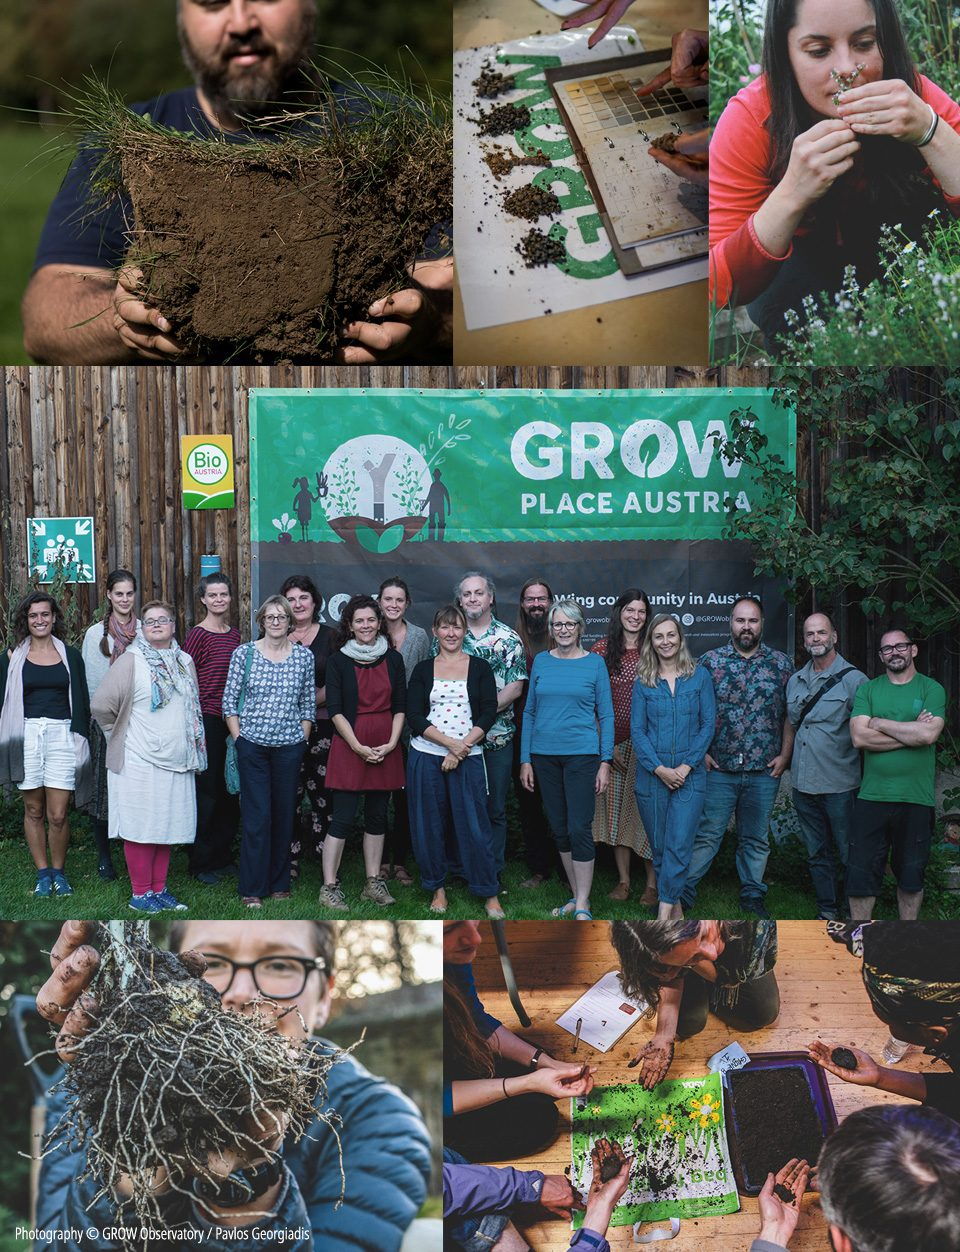 GROW photo collage